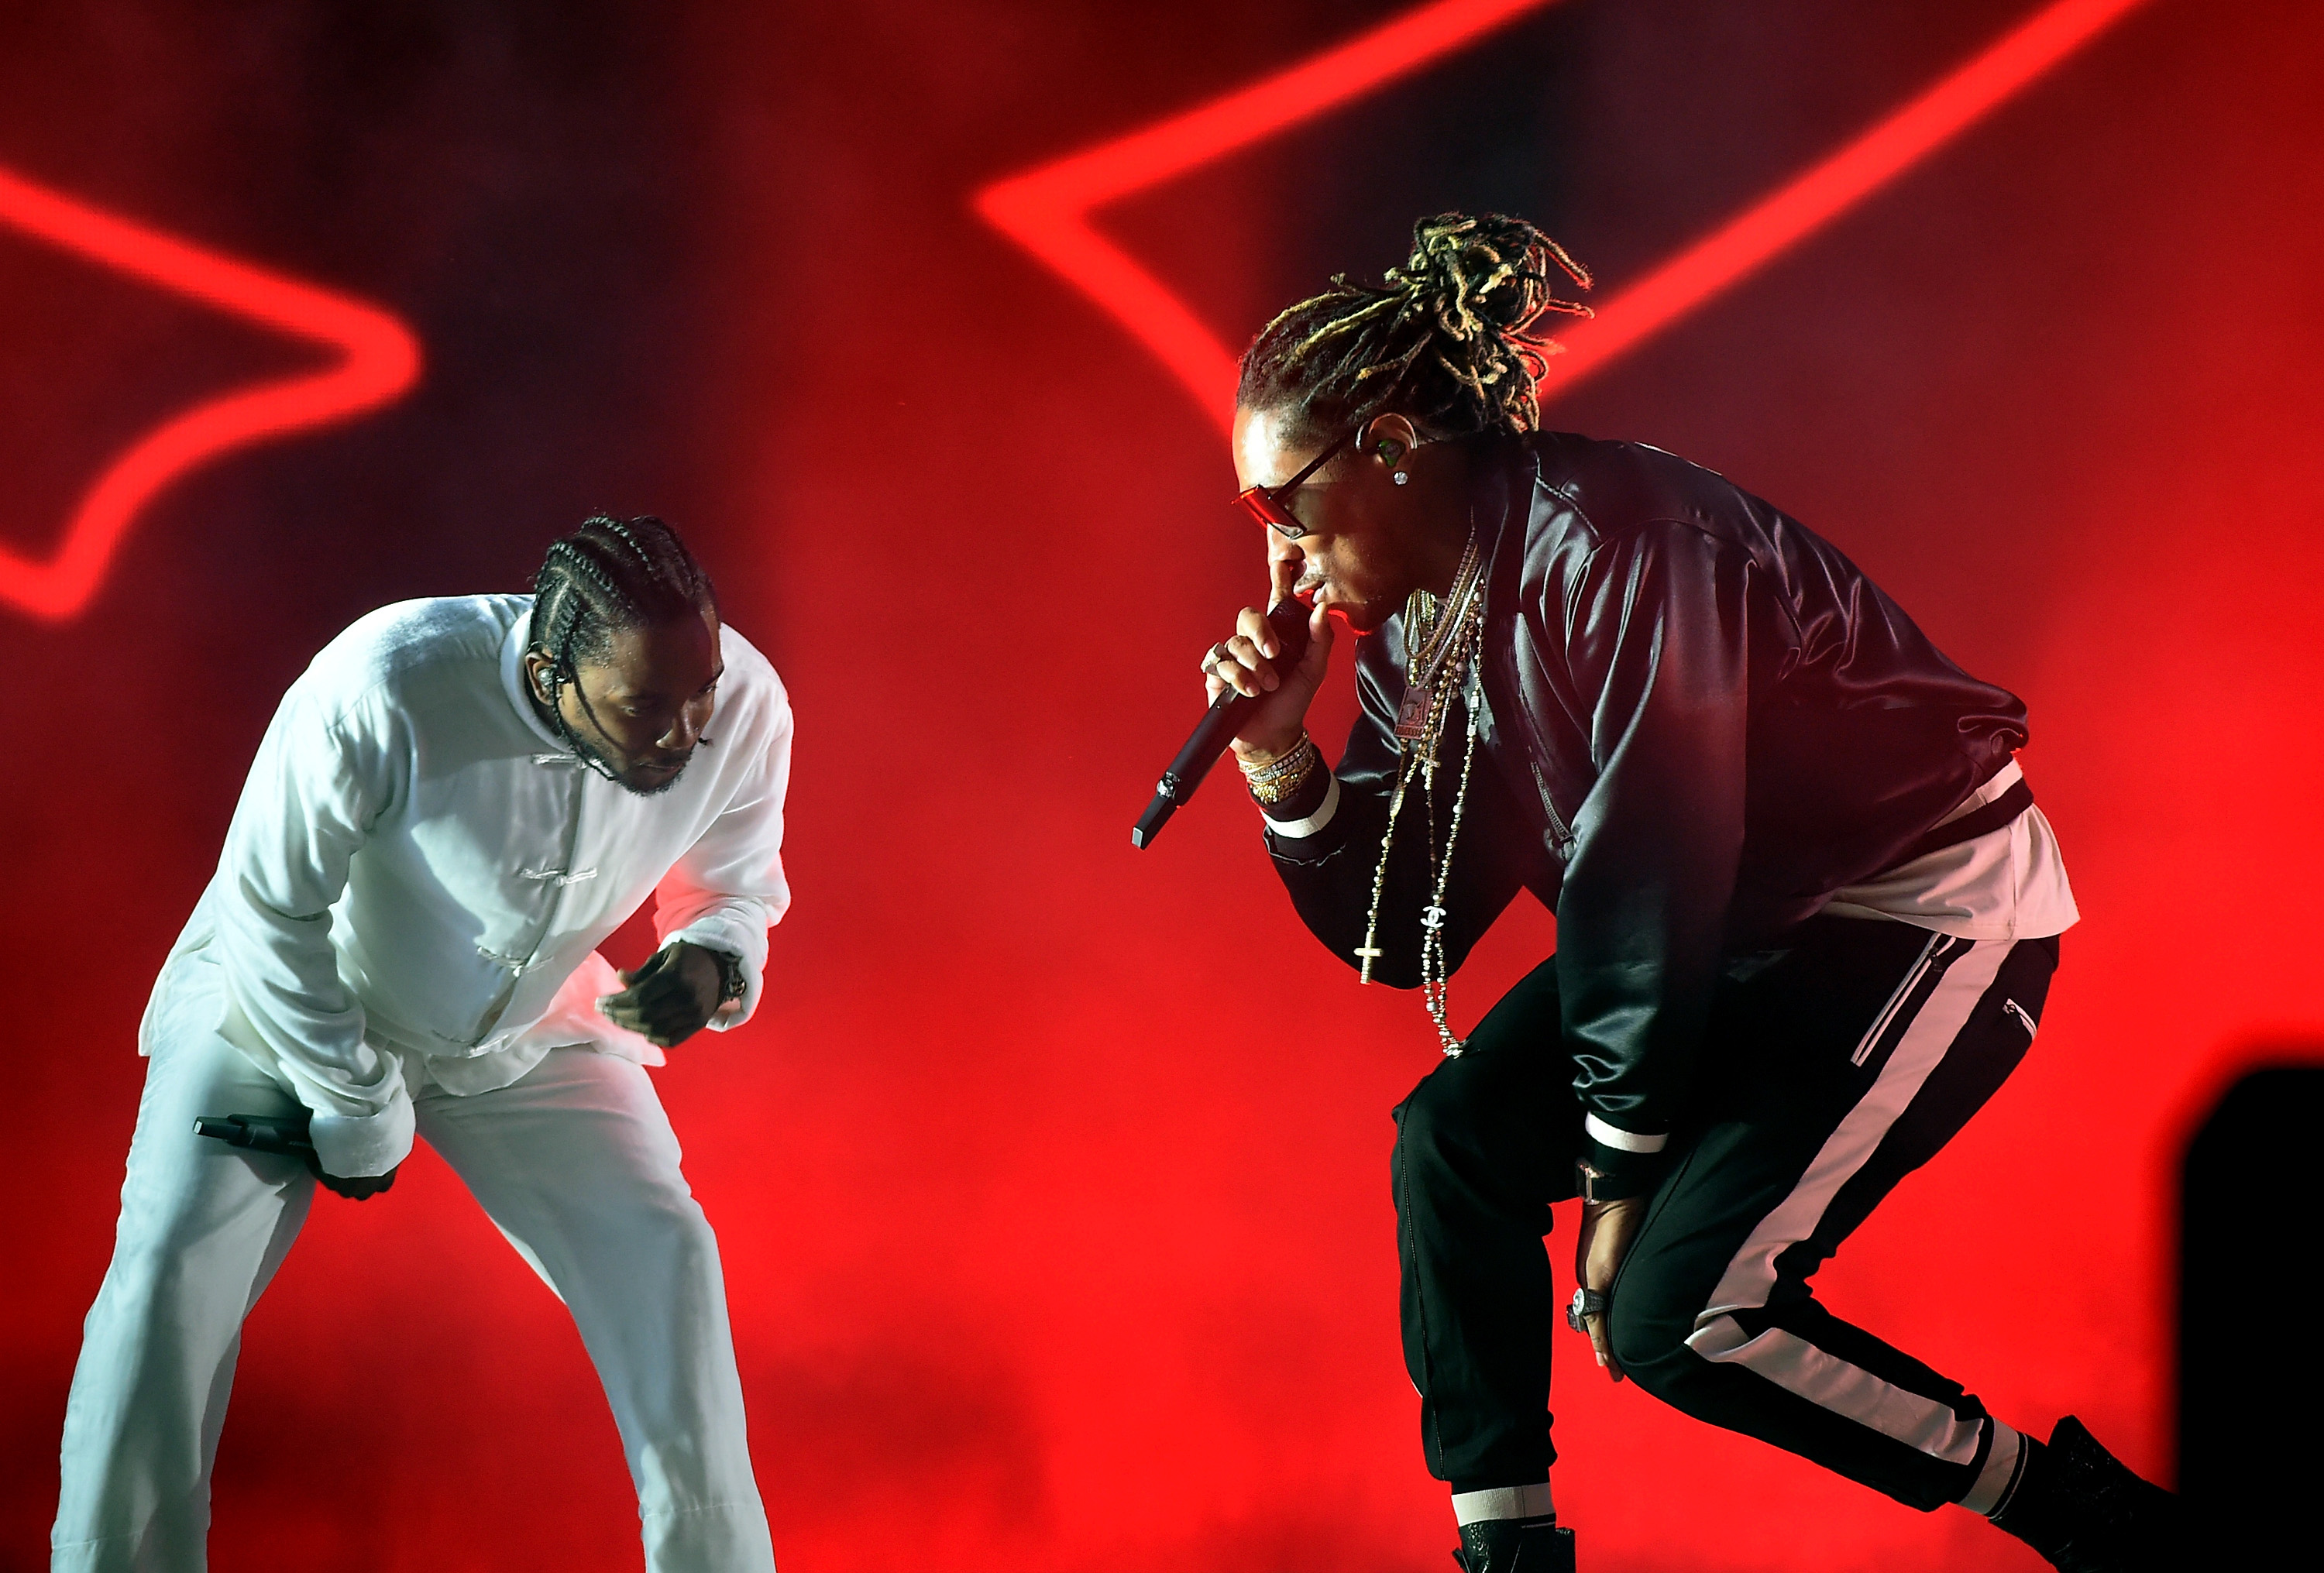 2017 Coachella Valley Music And Arts Festival - Weekend 1 - Day 3